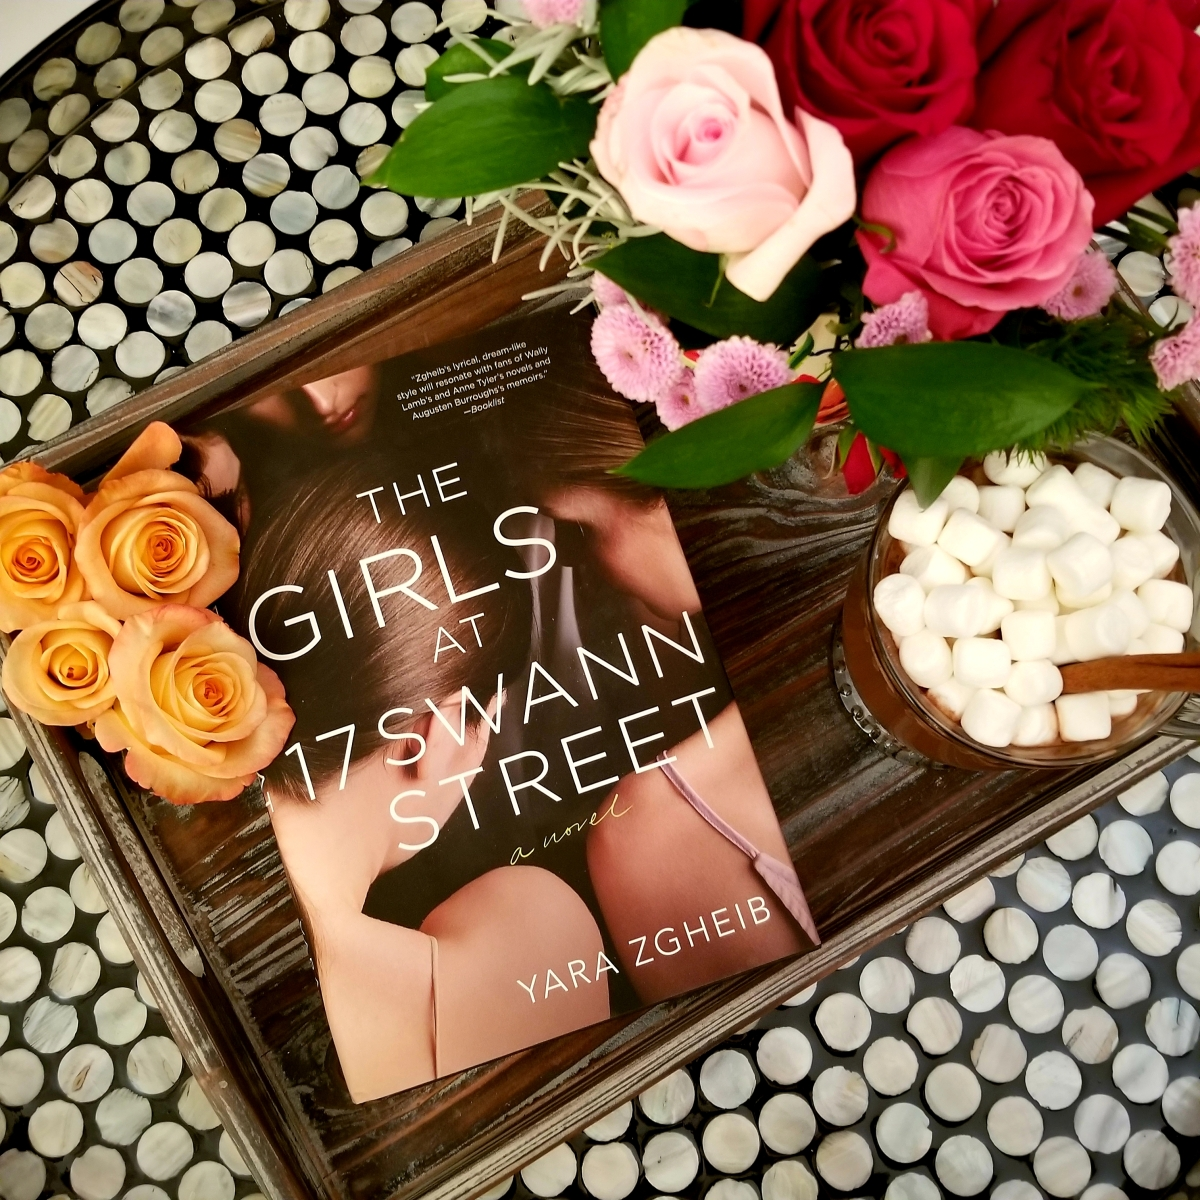 The Girls at 17 Swann Street by Yara Gheib #bookreview #tarheelreader #thrswann #yarazgheib @stmartinspress #thegirlsat17swannstreet